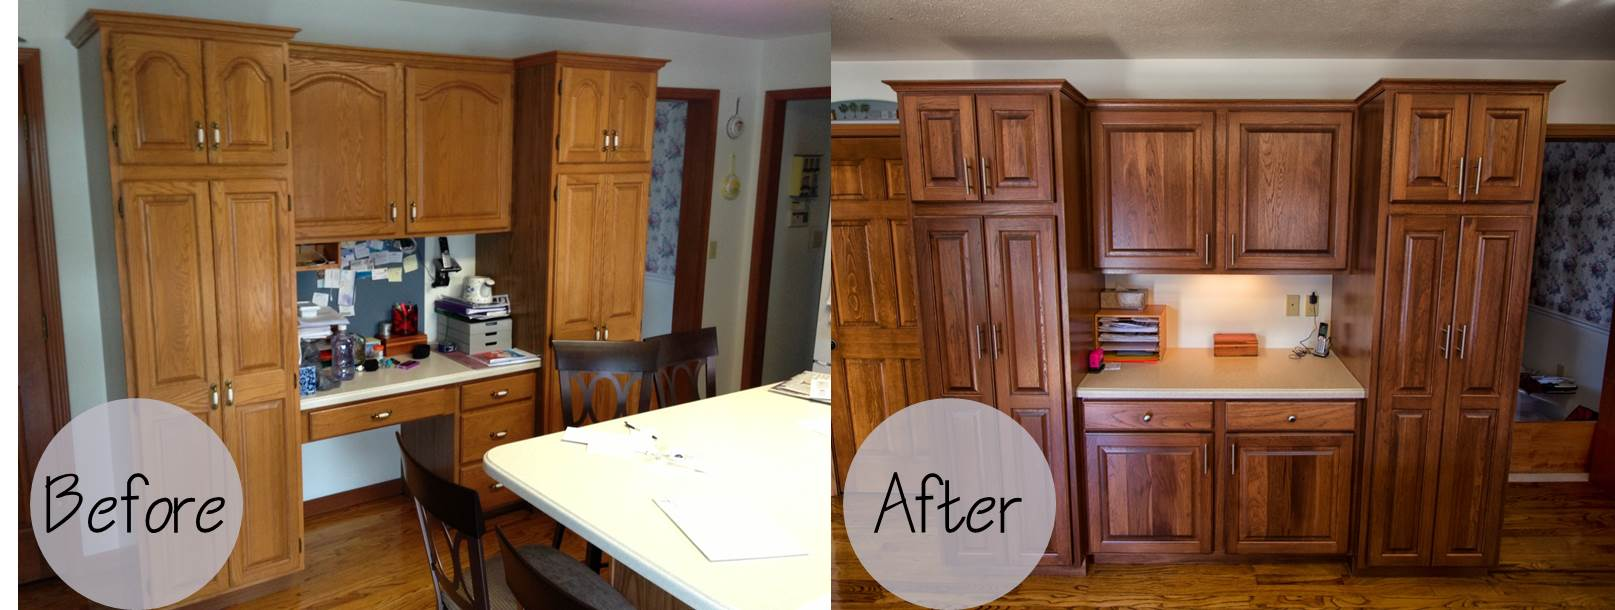 Cabinet refacing wheeler brothers construction